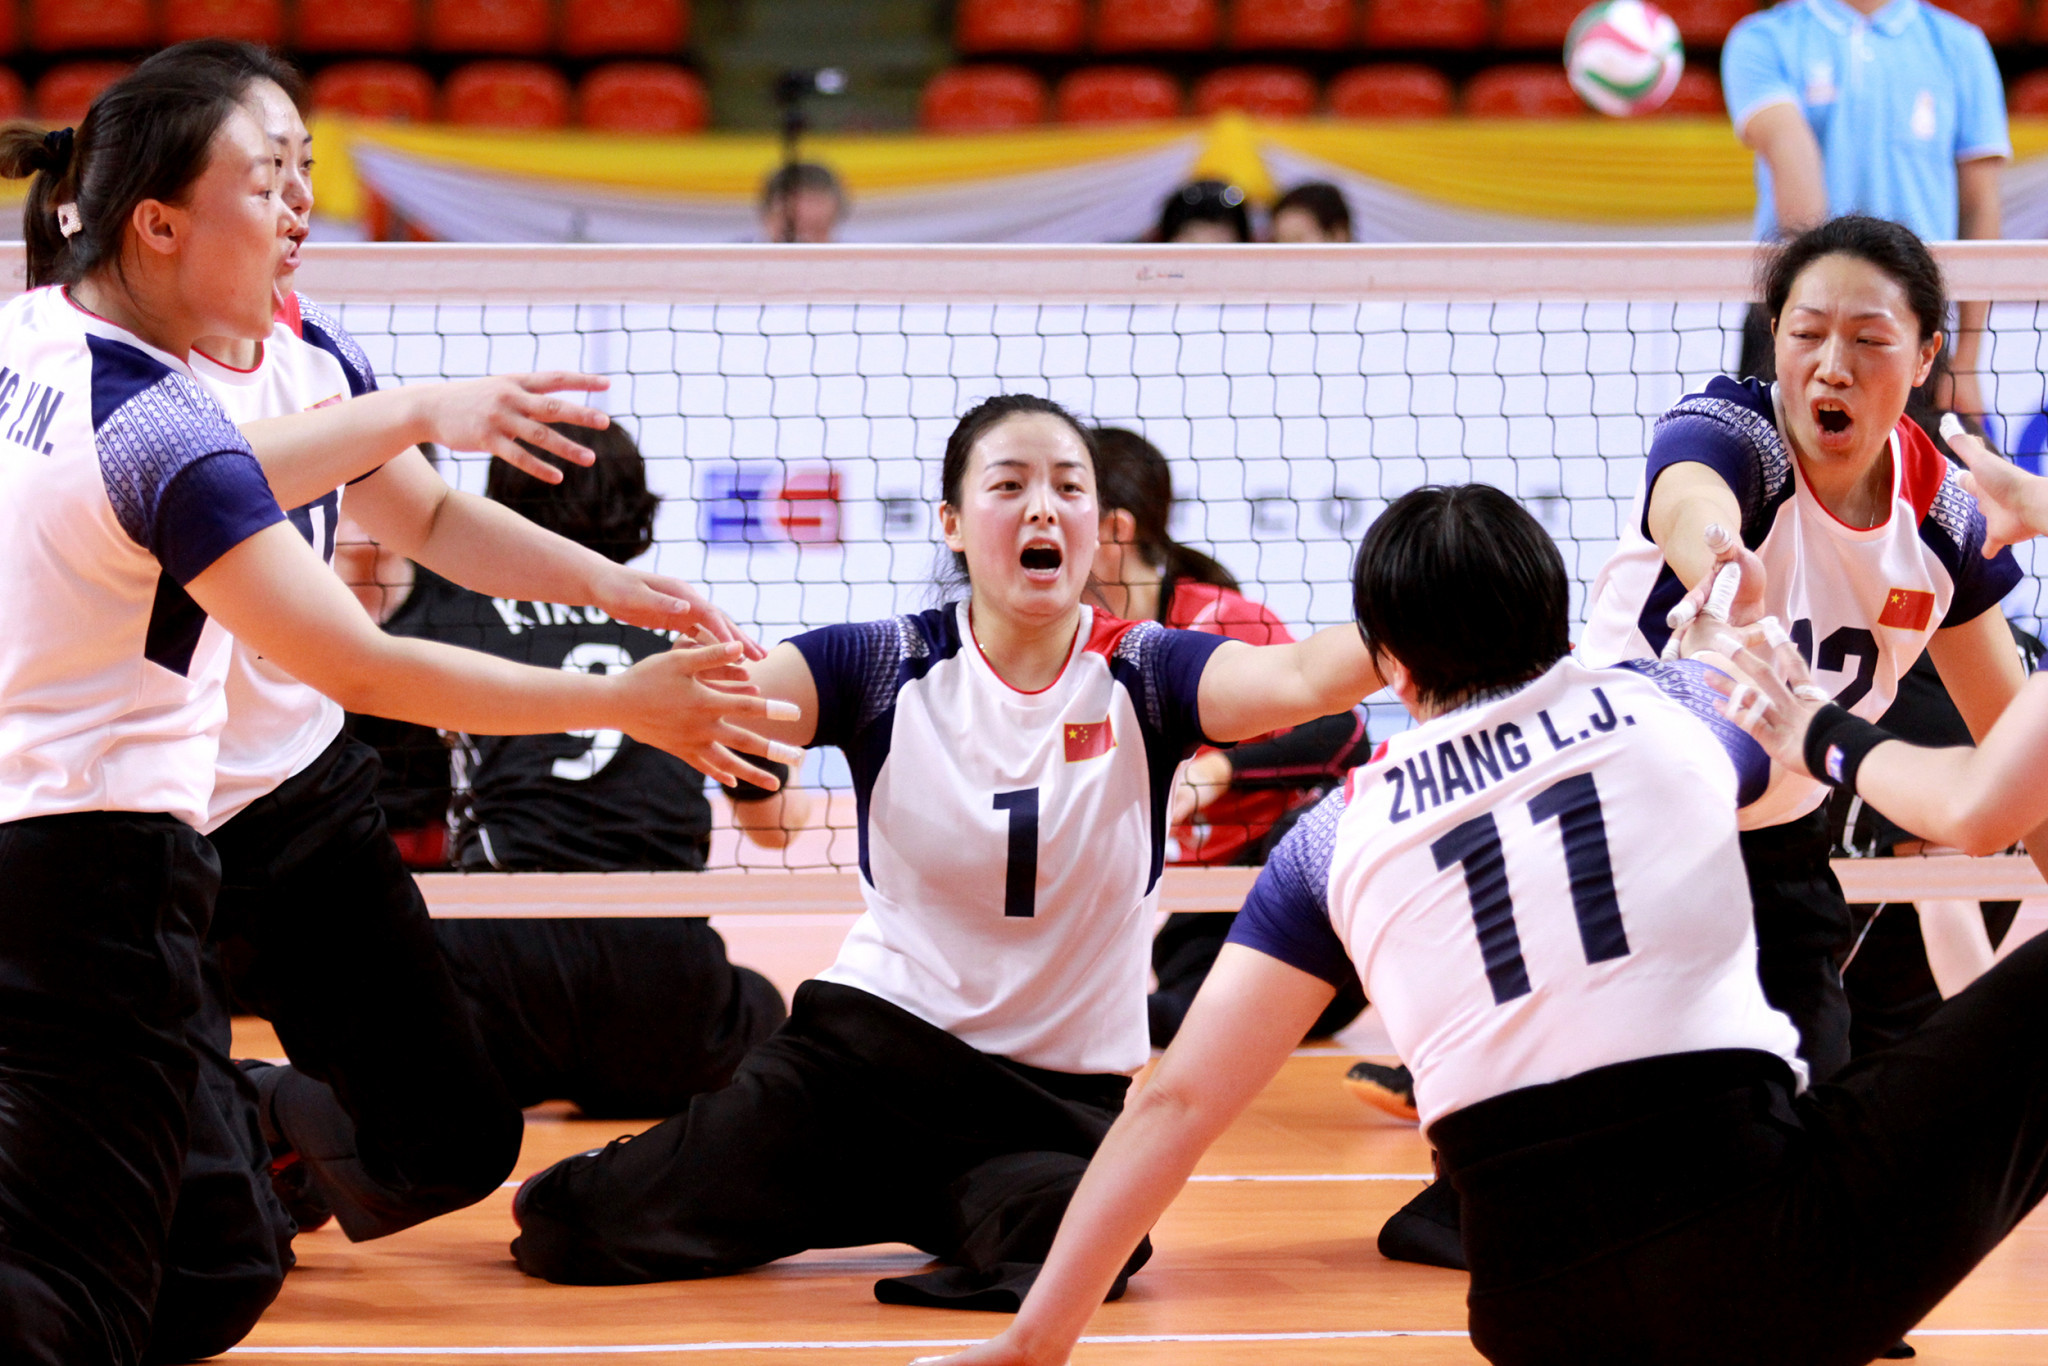 China won their second consecutive title in the women's tournament ©PVAO